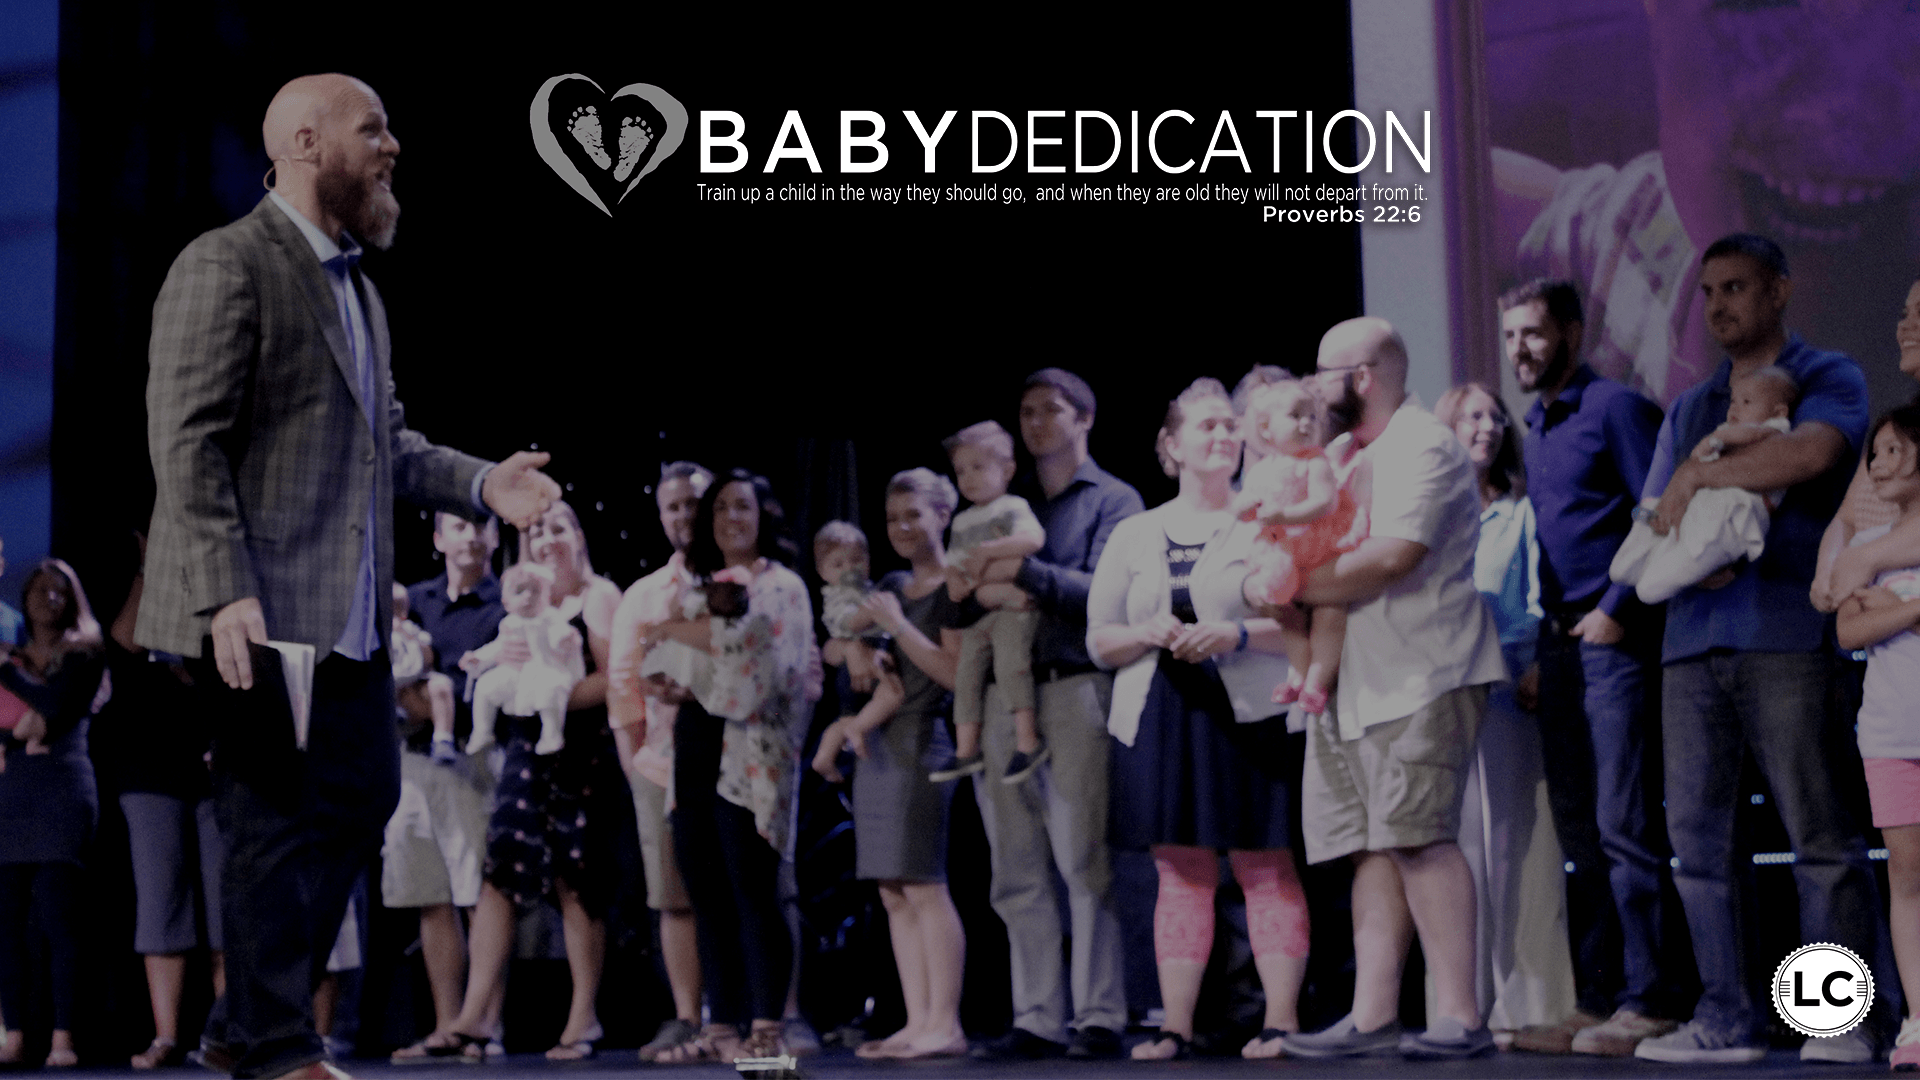 1920x1080 sidescsm babydedication12 2017